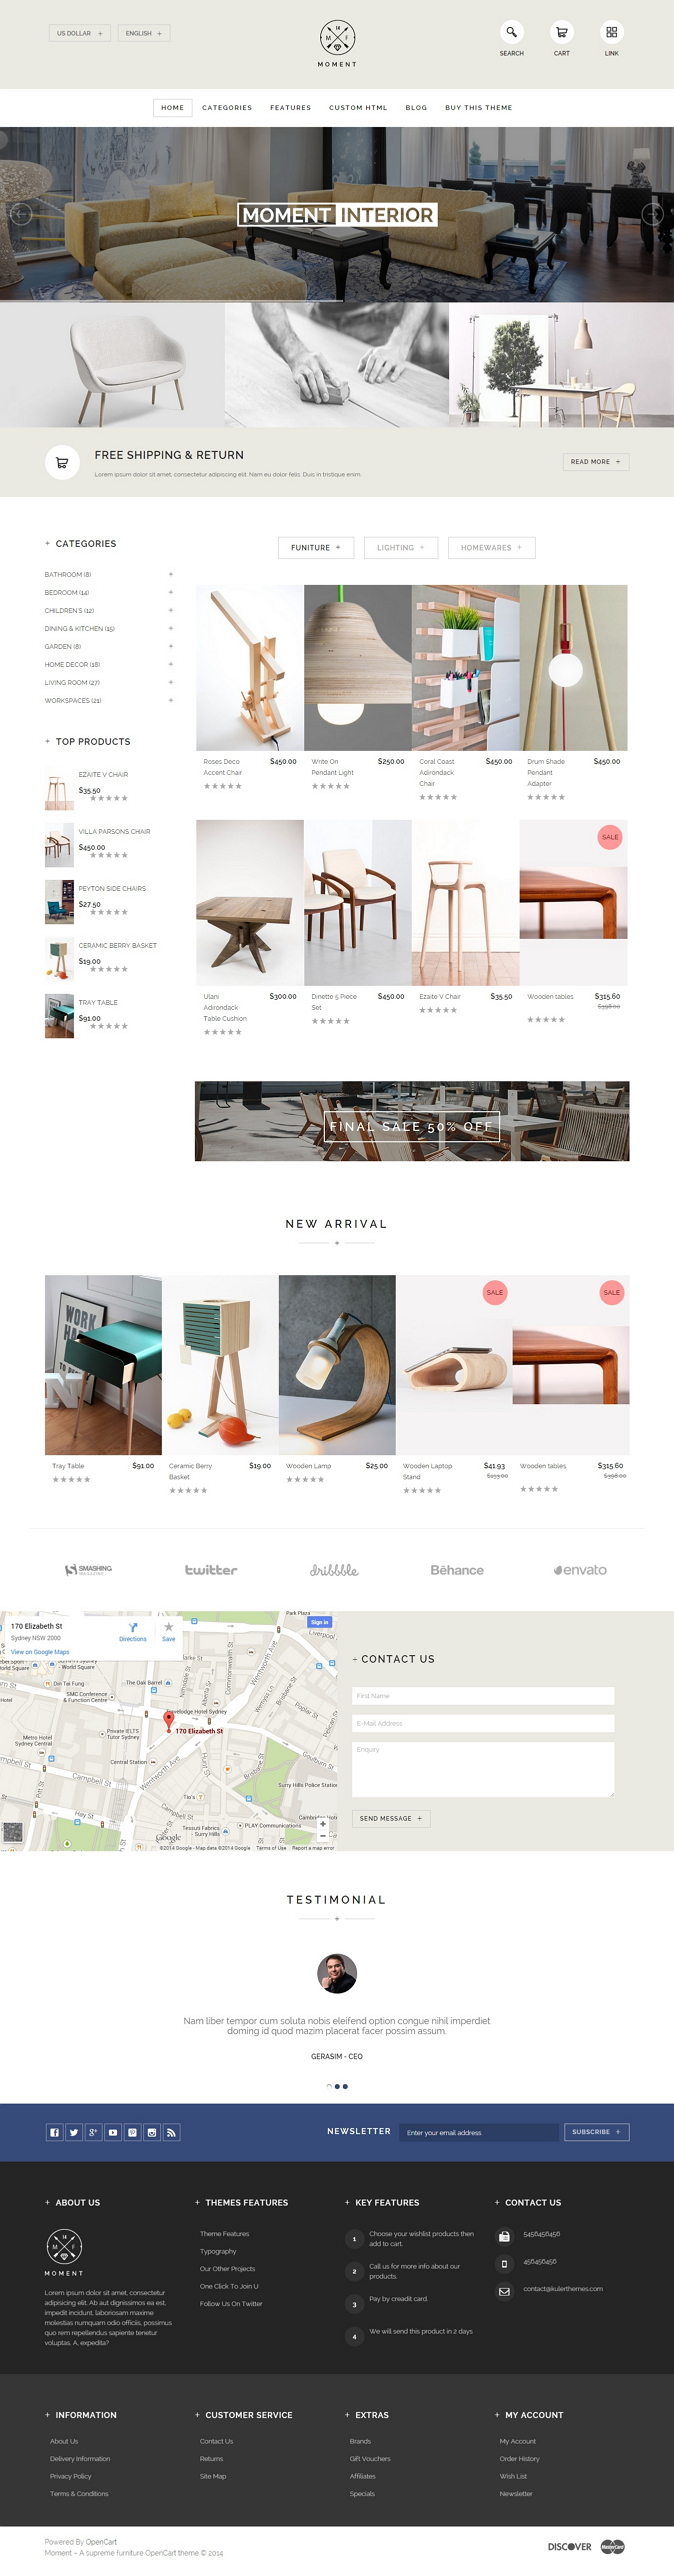 Moment has everything you need to establish a mind-blowing online furniture store. Shifting towa ...